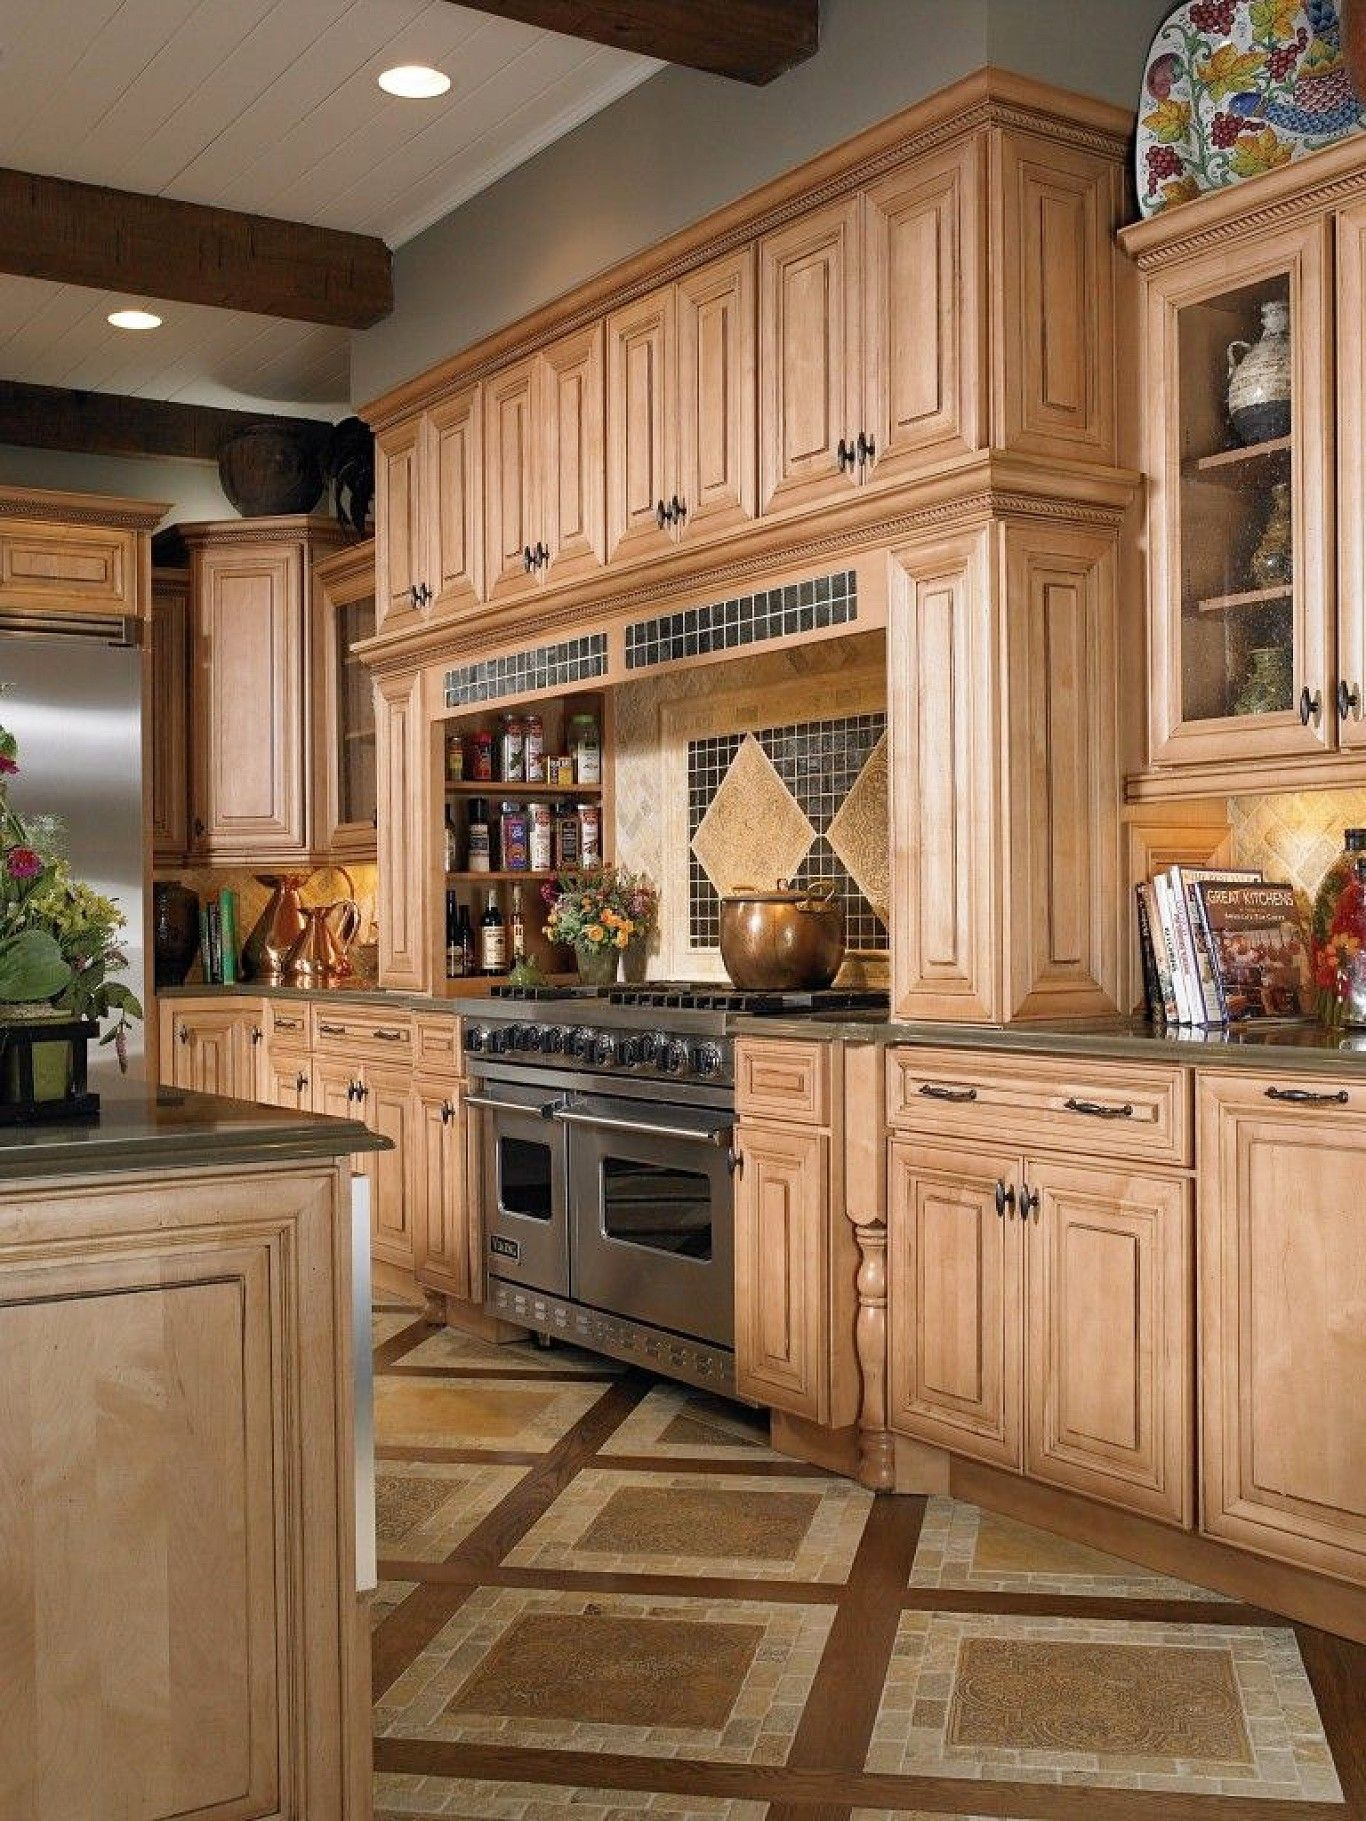 Best Of Home Depot Thomasville Kitchen Review